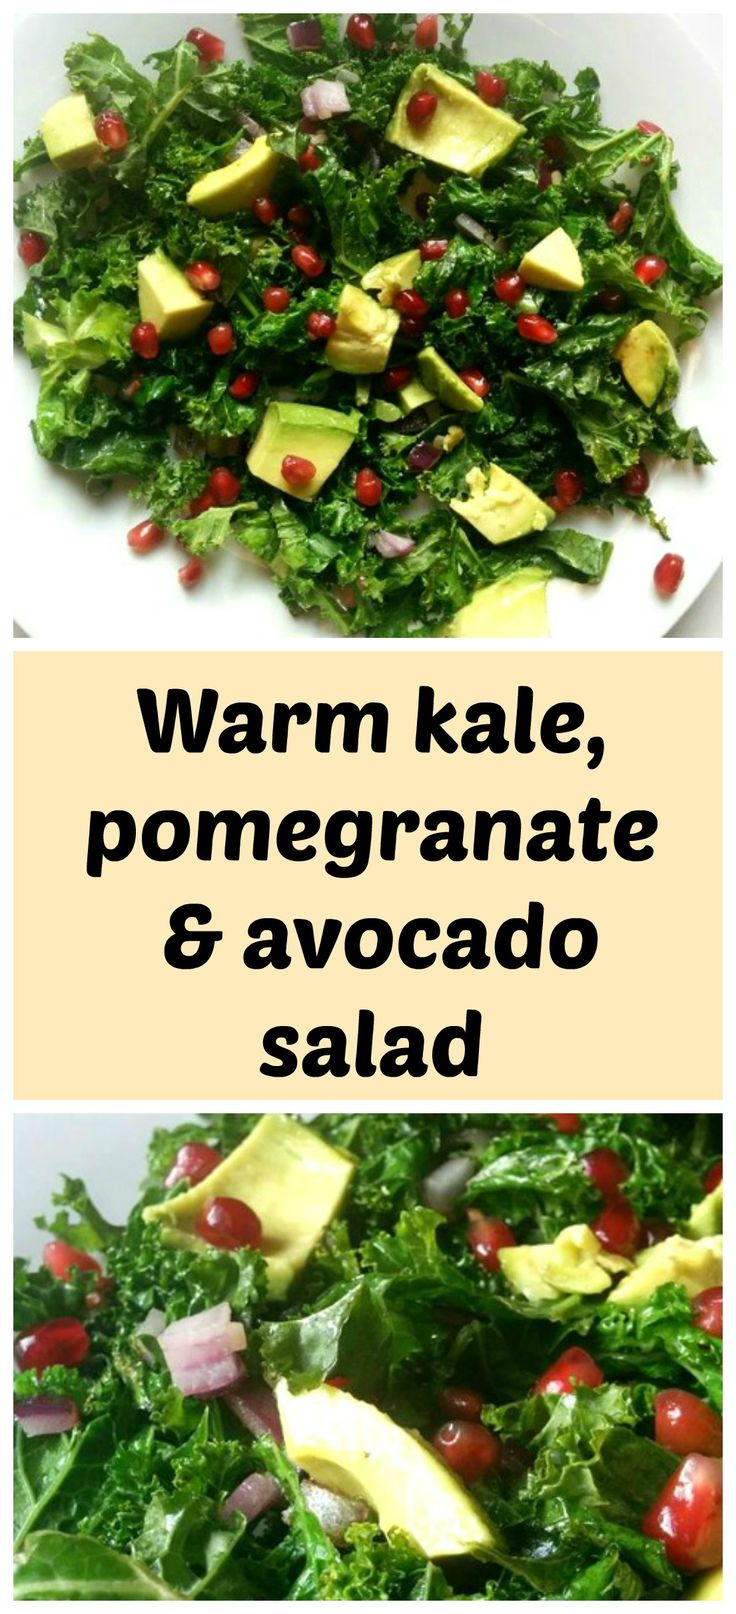 Warm kale, pomegranate and avocado salad is a healthy and satisfying lunch or side dish.